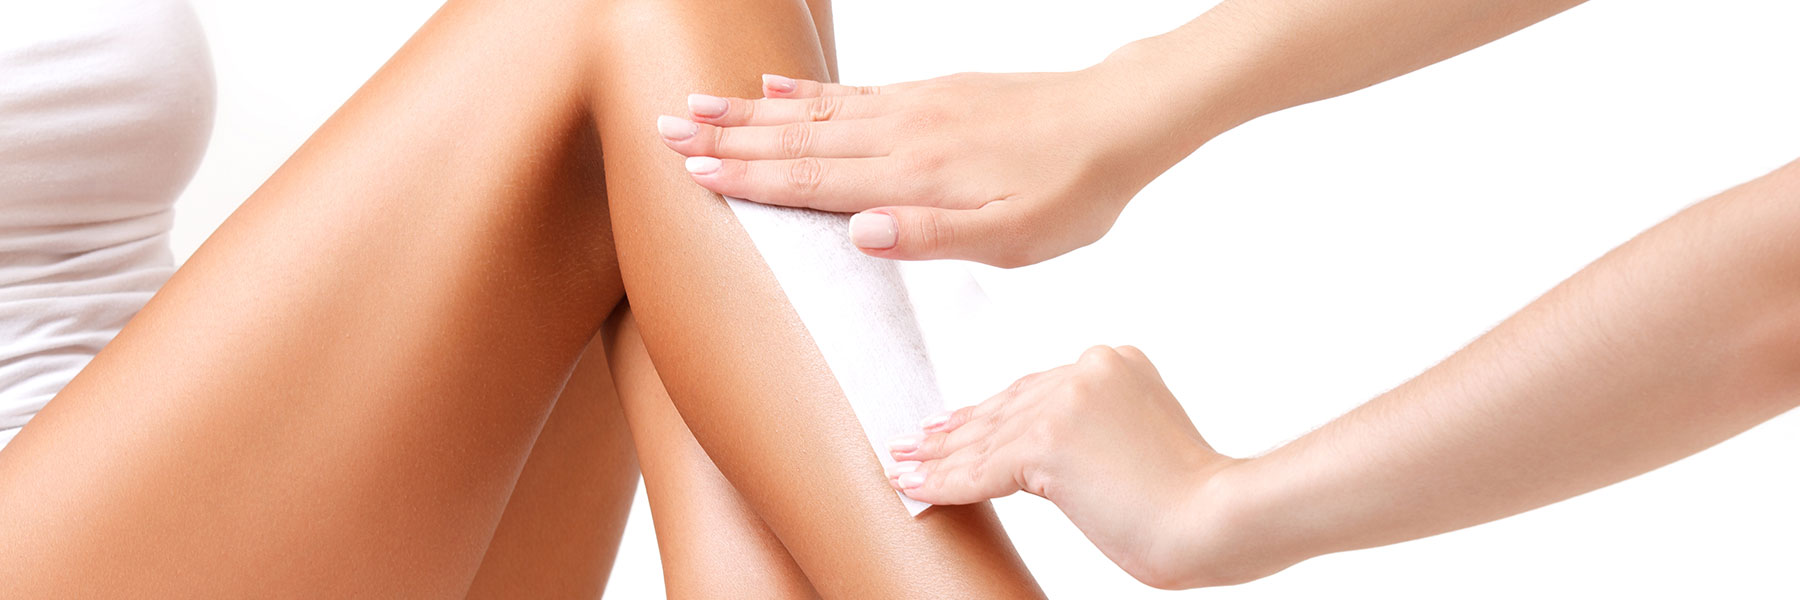 sedalia hair removal services